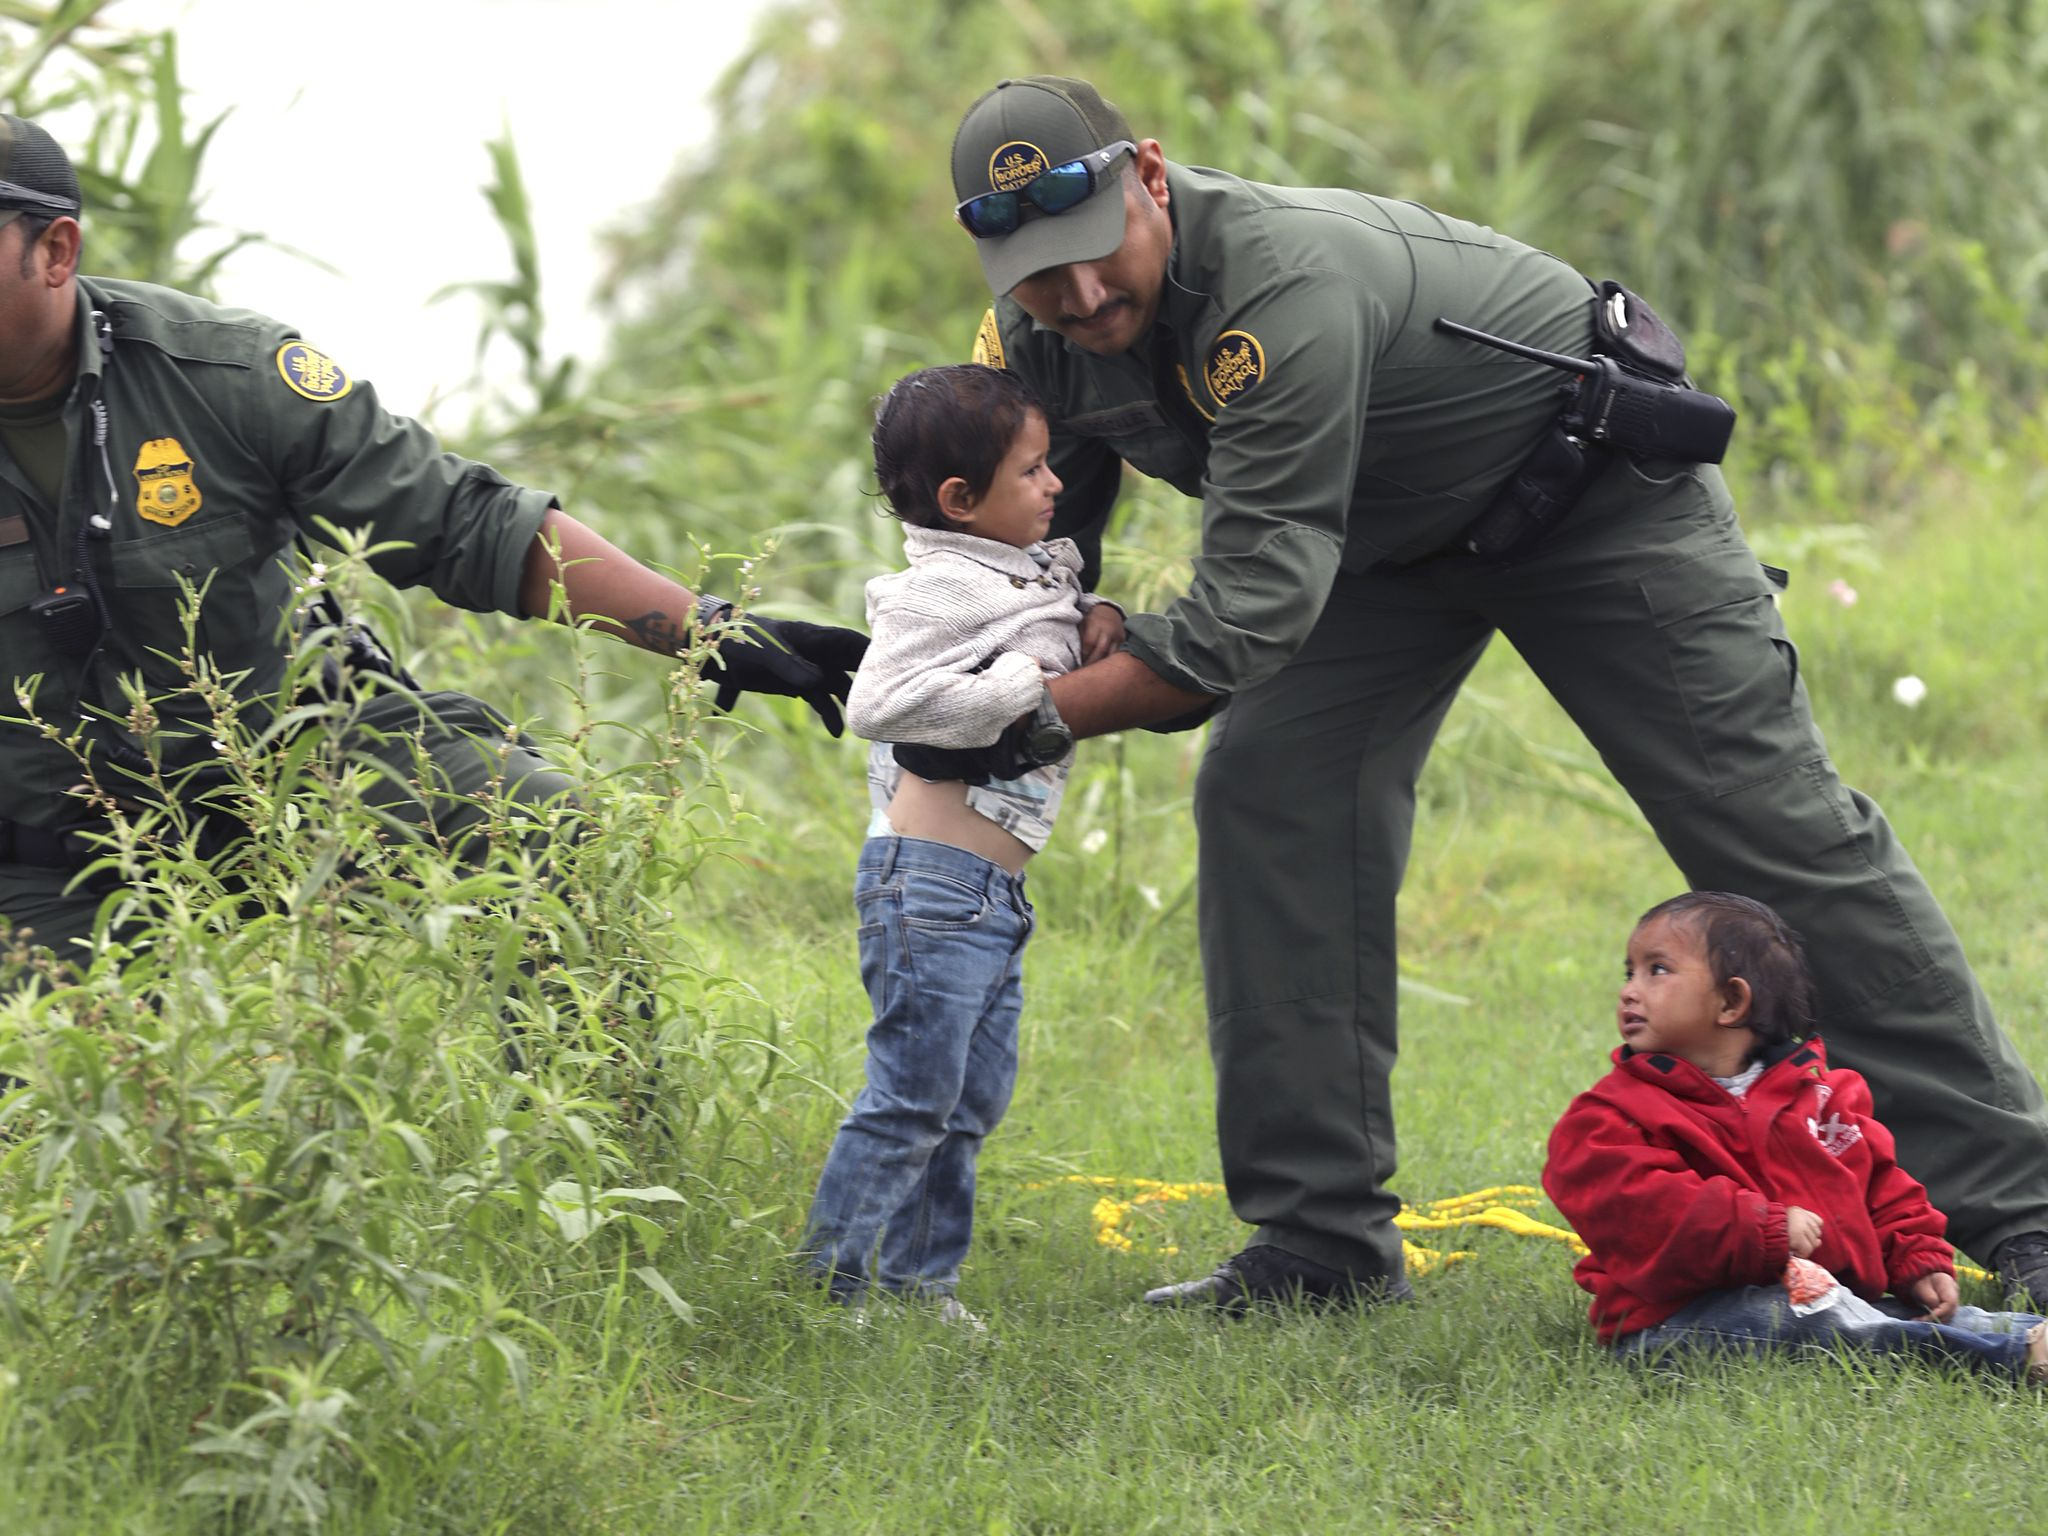 Border Patrol proposes new job to feed, care for illegal immigrants